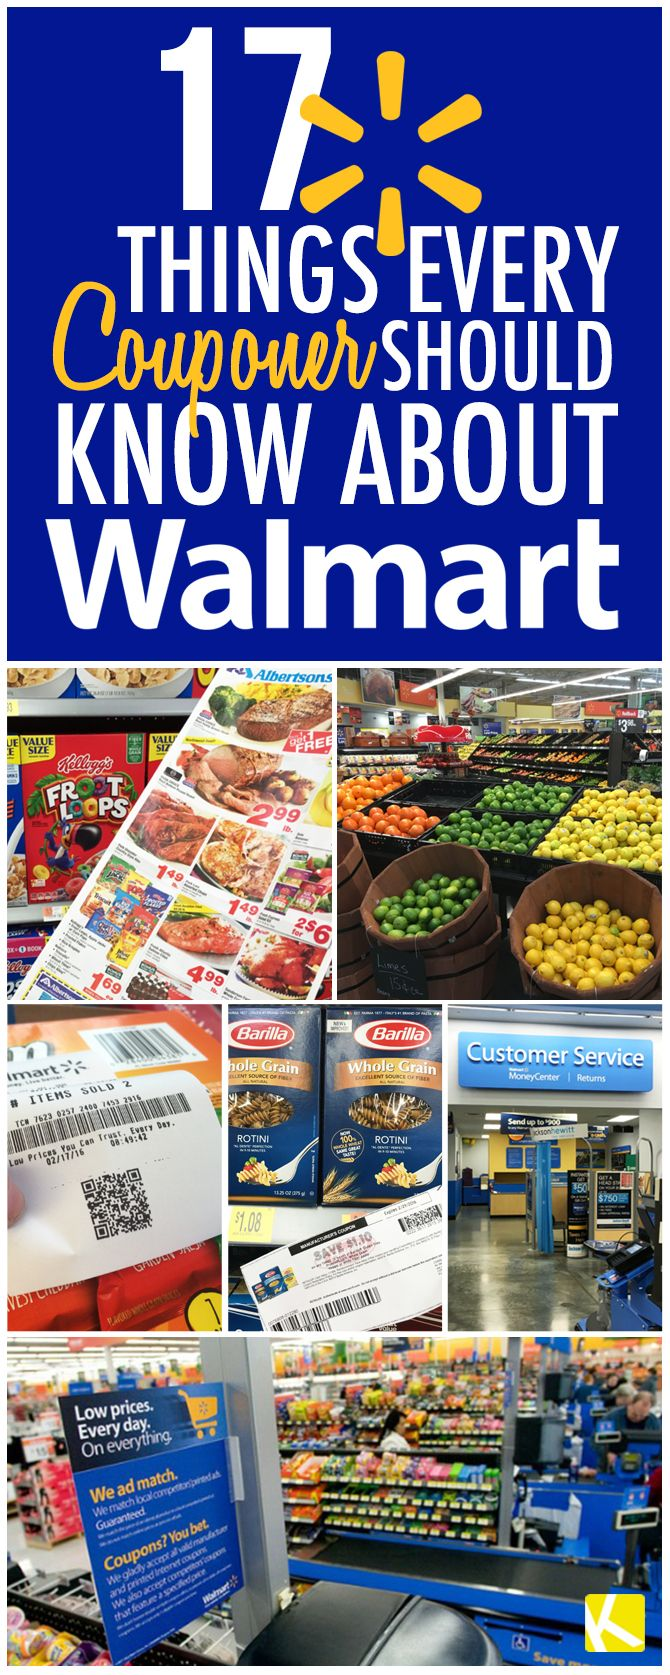 17 Walmart Couponing Hacks You Need to Know http://masscouponsubmitter.com